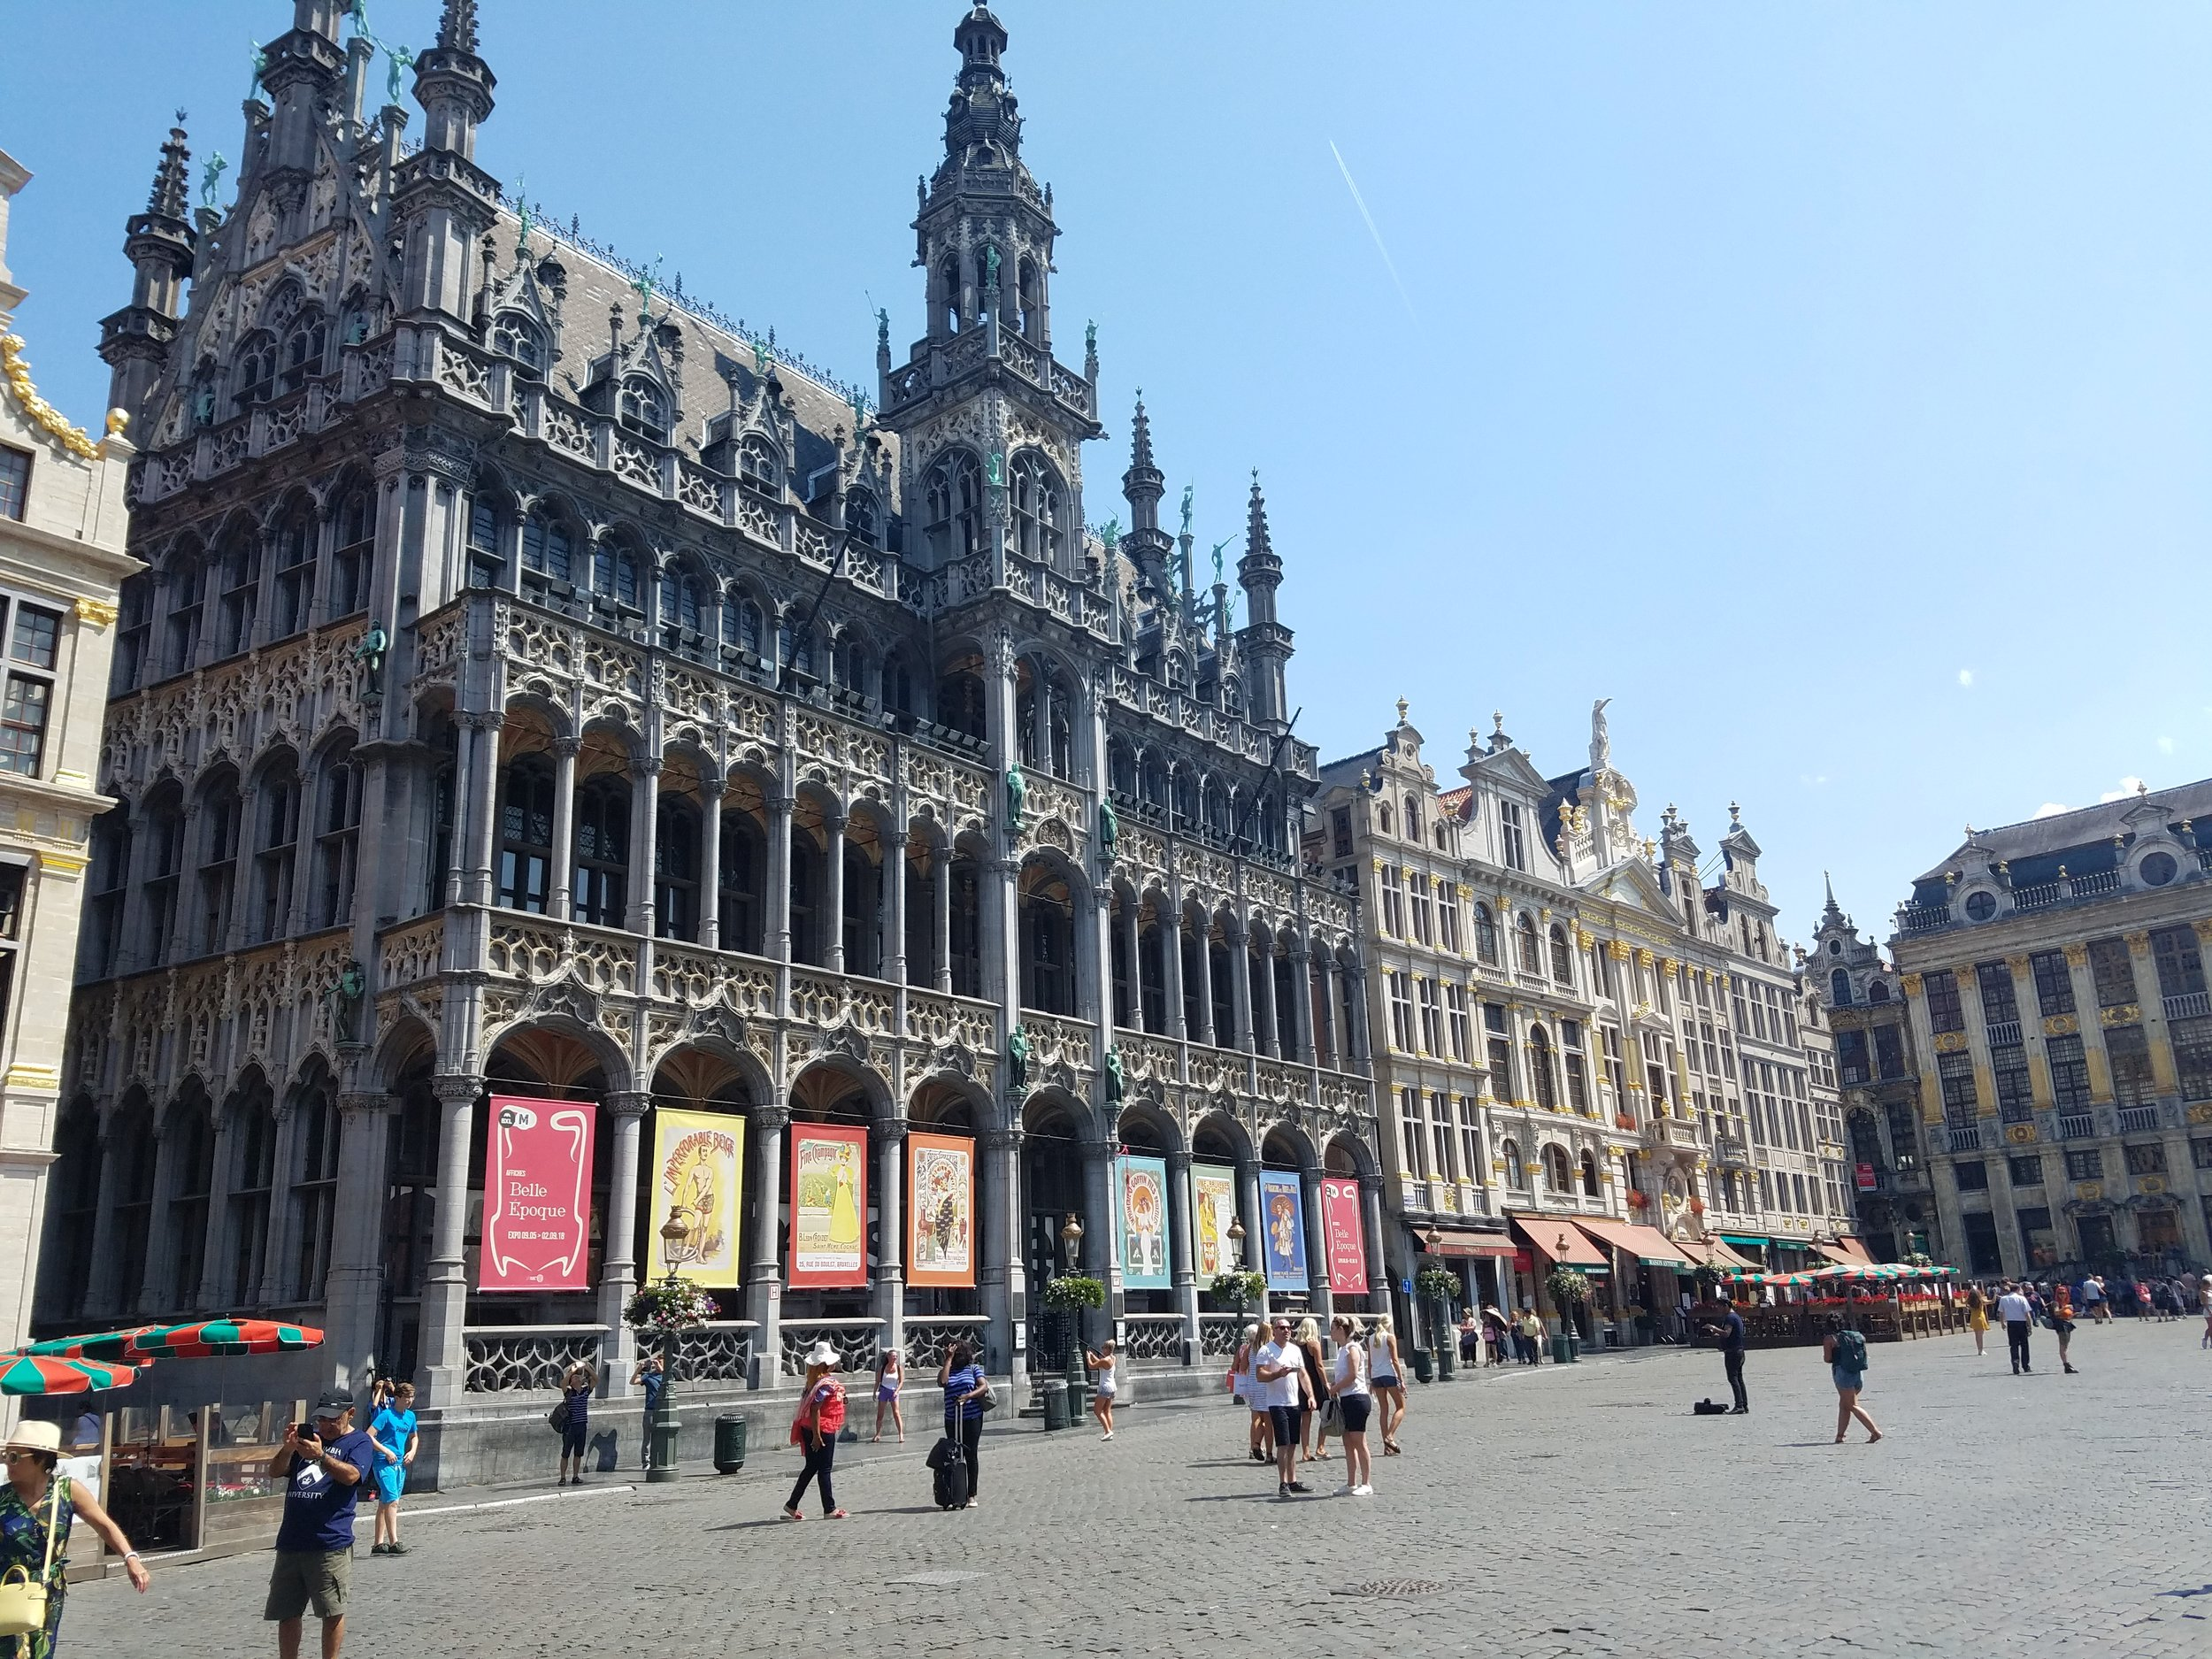 The Grote Markt of Brussels is the most opulent and beautiful we have seen so far!